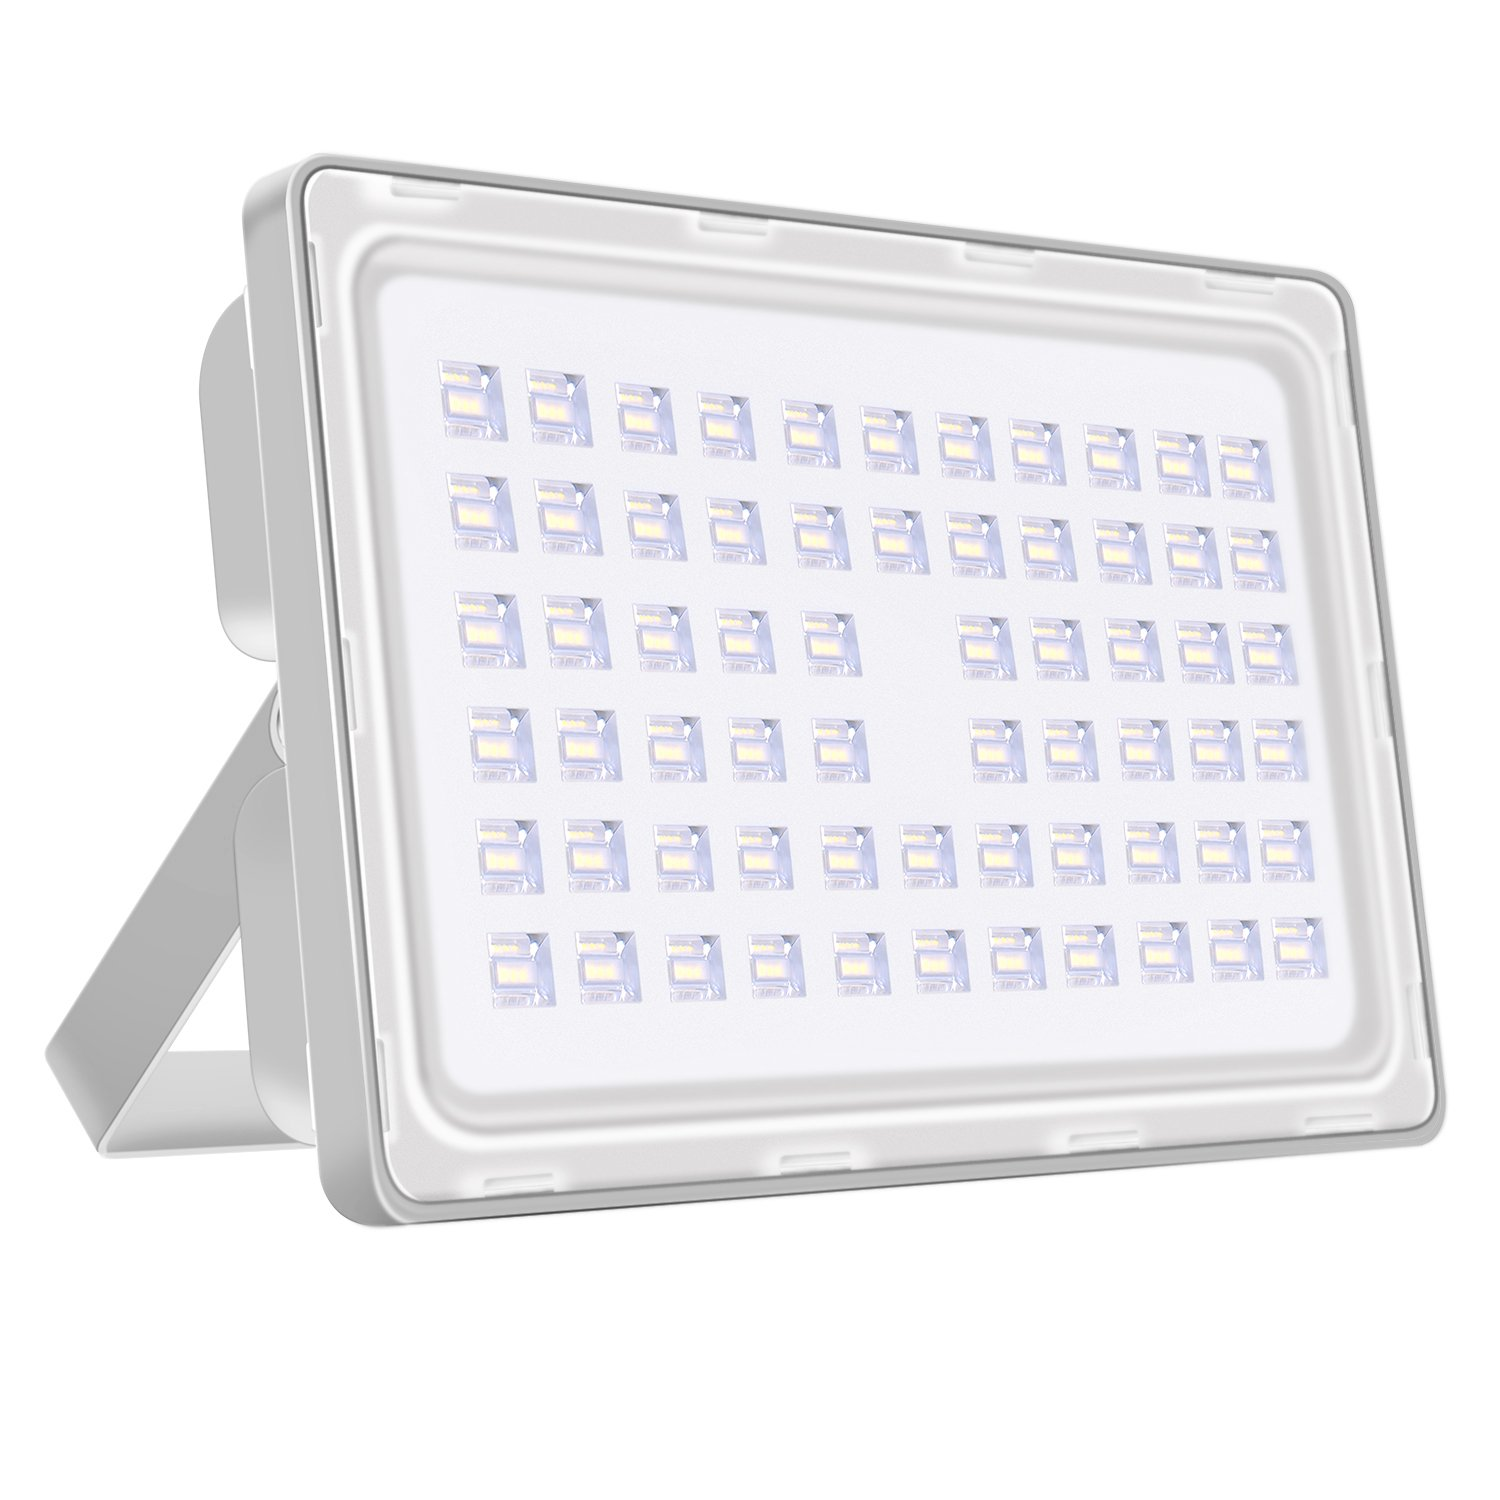 Viugreum 200W LED Outdoor Flood Lights,Thinner and Lighter Design,Waterproof IP65 20000LM,Daylight White(6000-6500K),Super Bright Security Lights,Factory ,Stadium Lamp for Garden,Yard,Warehouse,Square